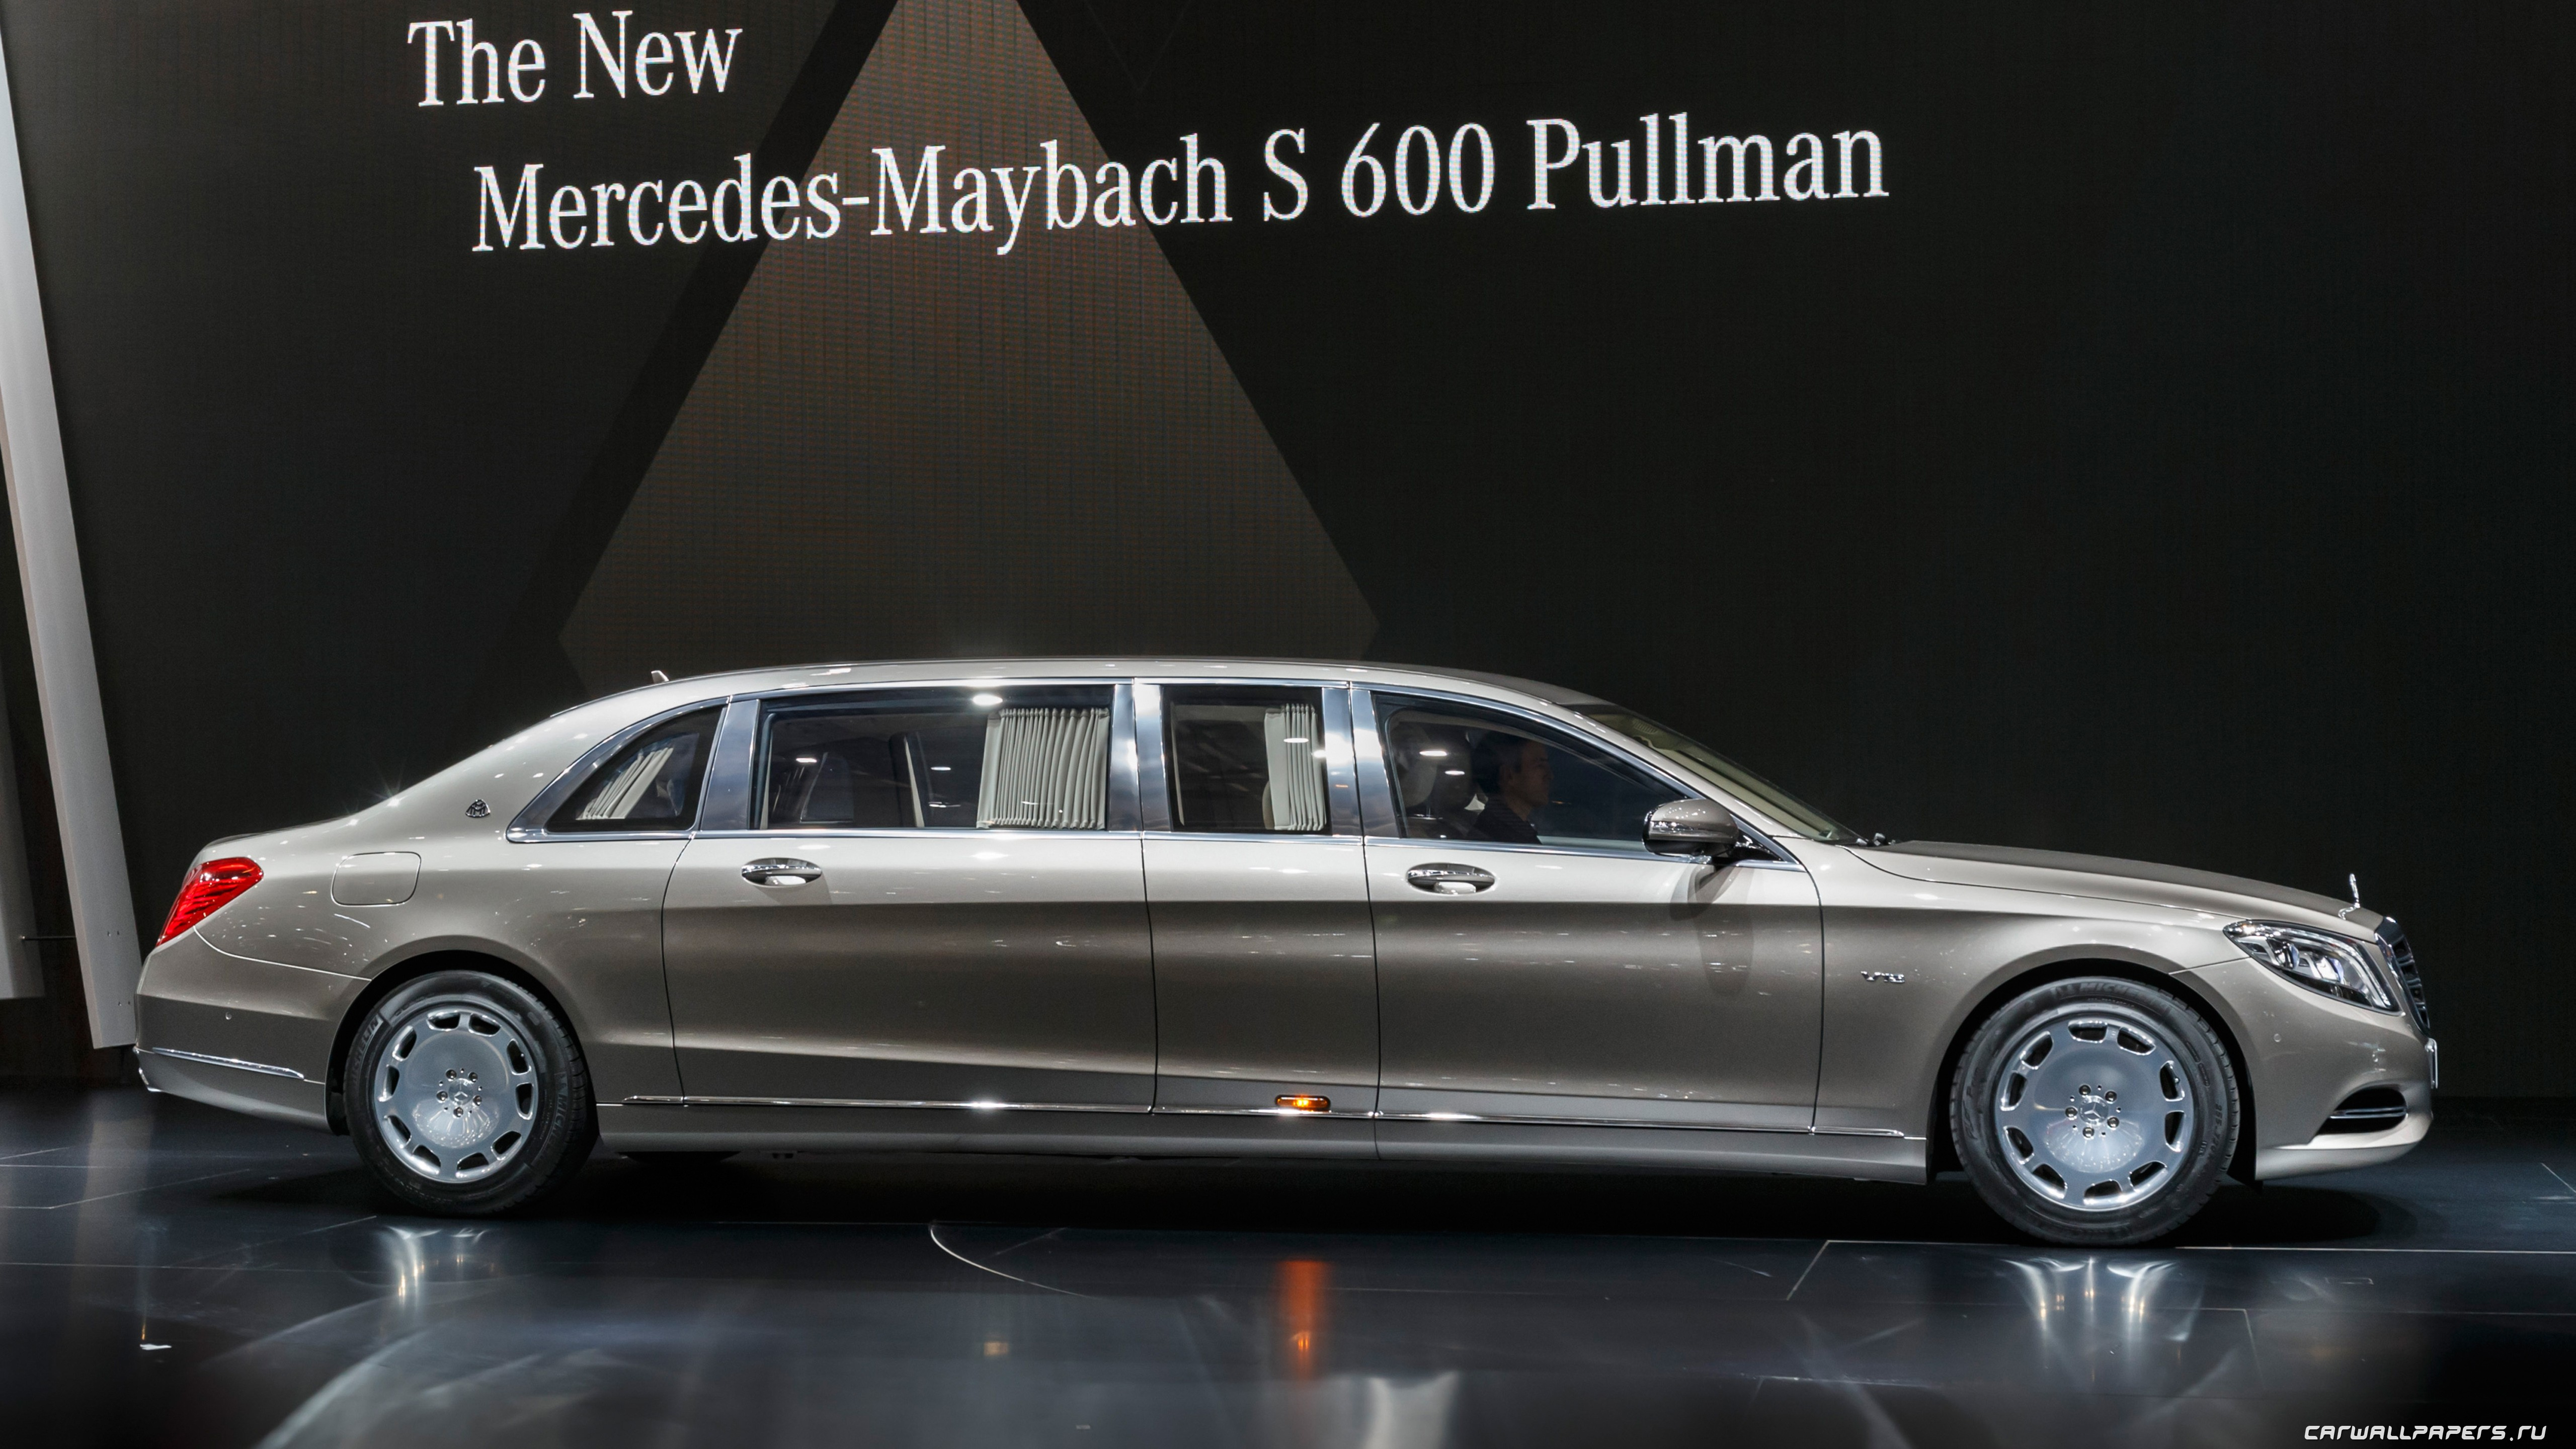 Wallpaper Mercedes Maybach S600 Pullman, sedan, grey, luxery., Cars & Bikes #6062